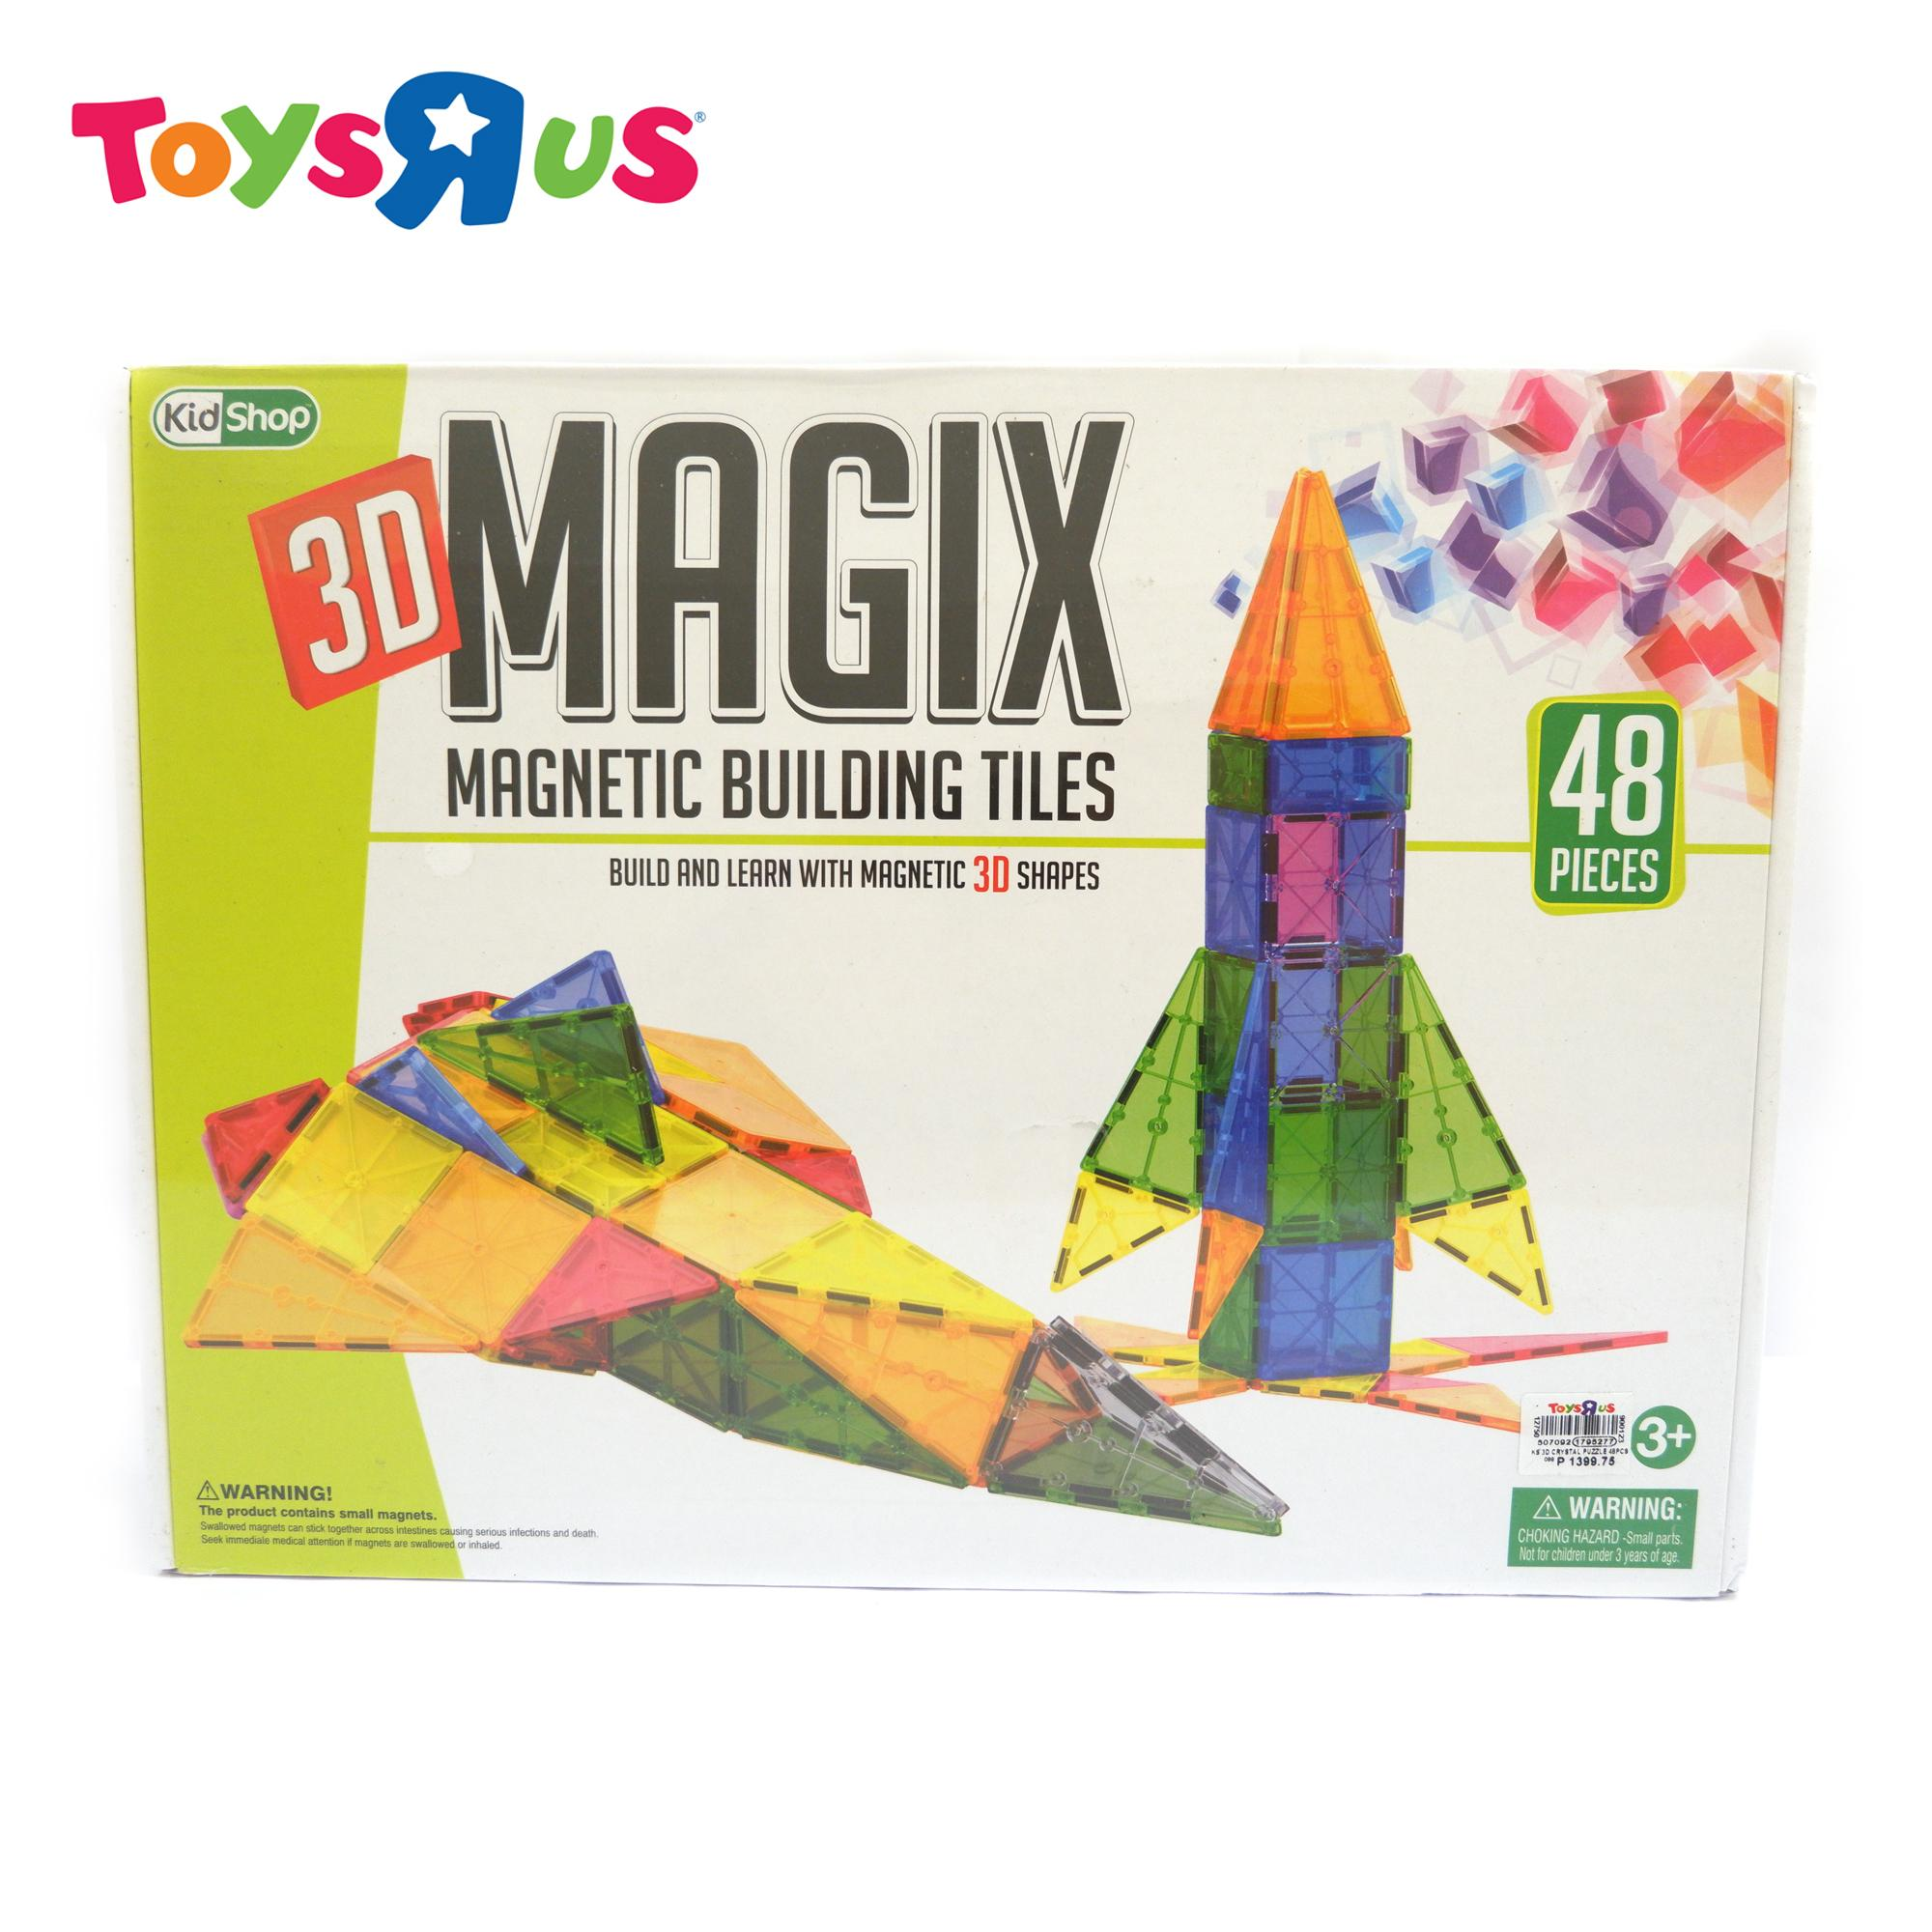 Kidshop 3D Magix 48 pieces Magnetic Building Tiles